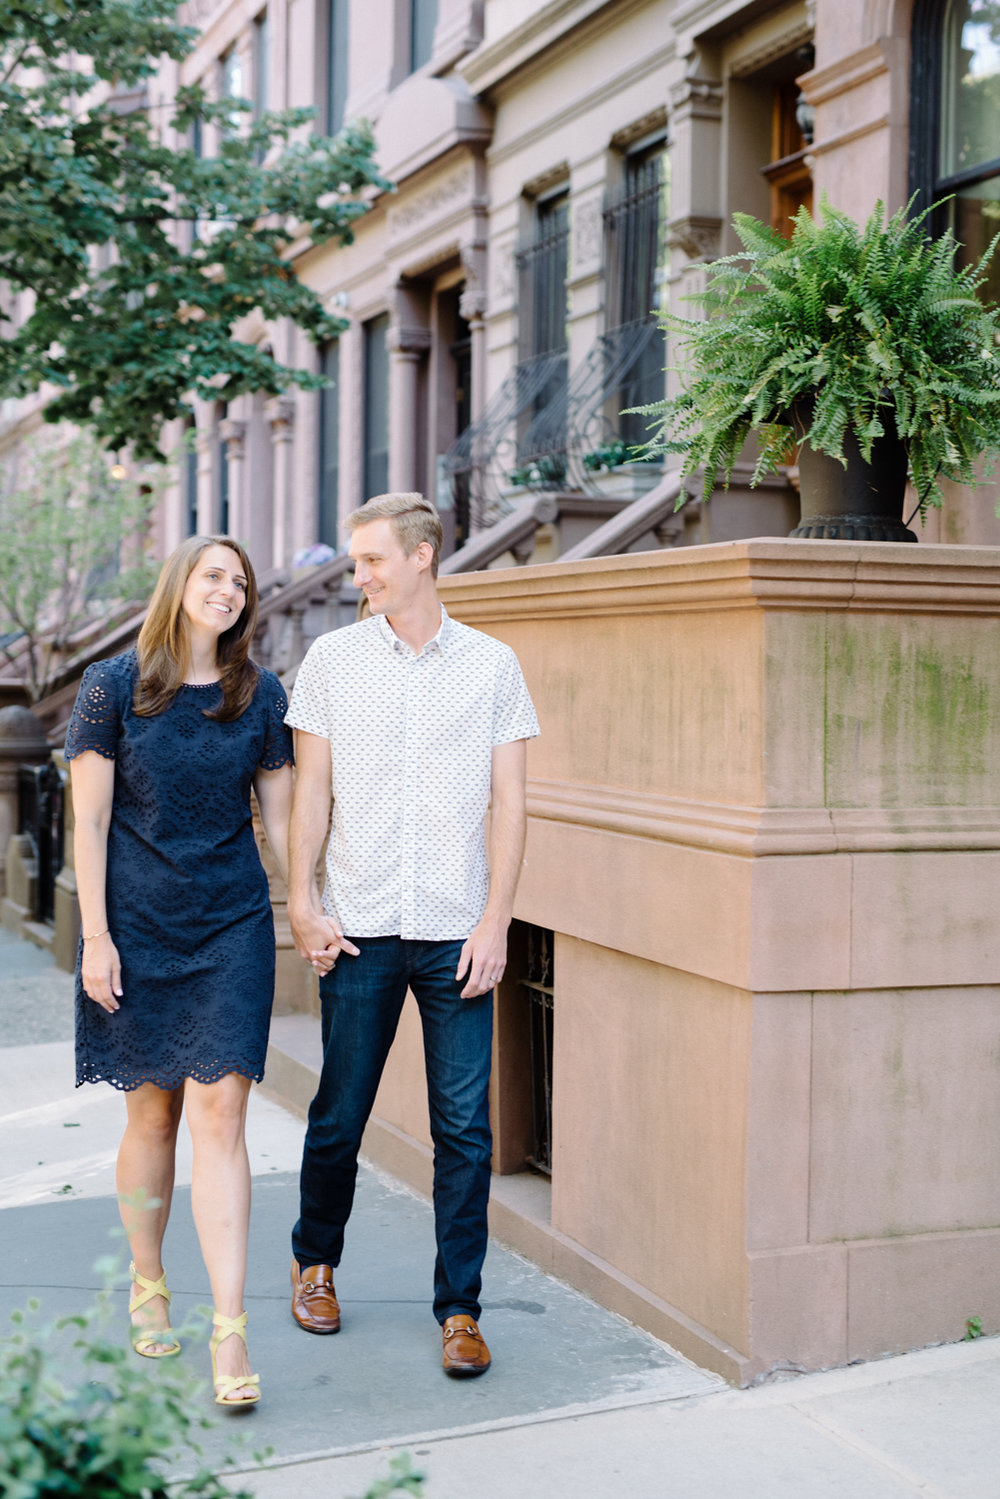 Linda+Jason-Upper West Side Anniversary Session-New York City- Olivia Christina Photo-52.jpg